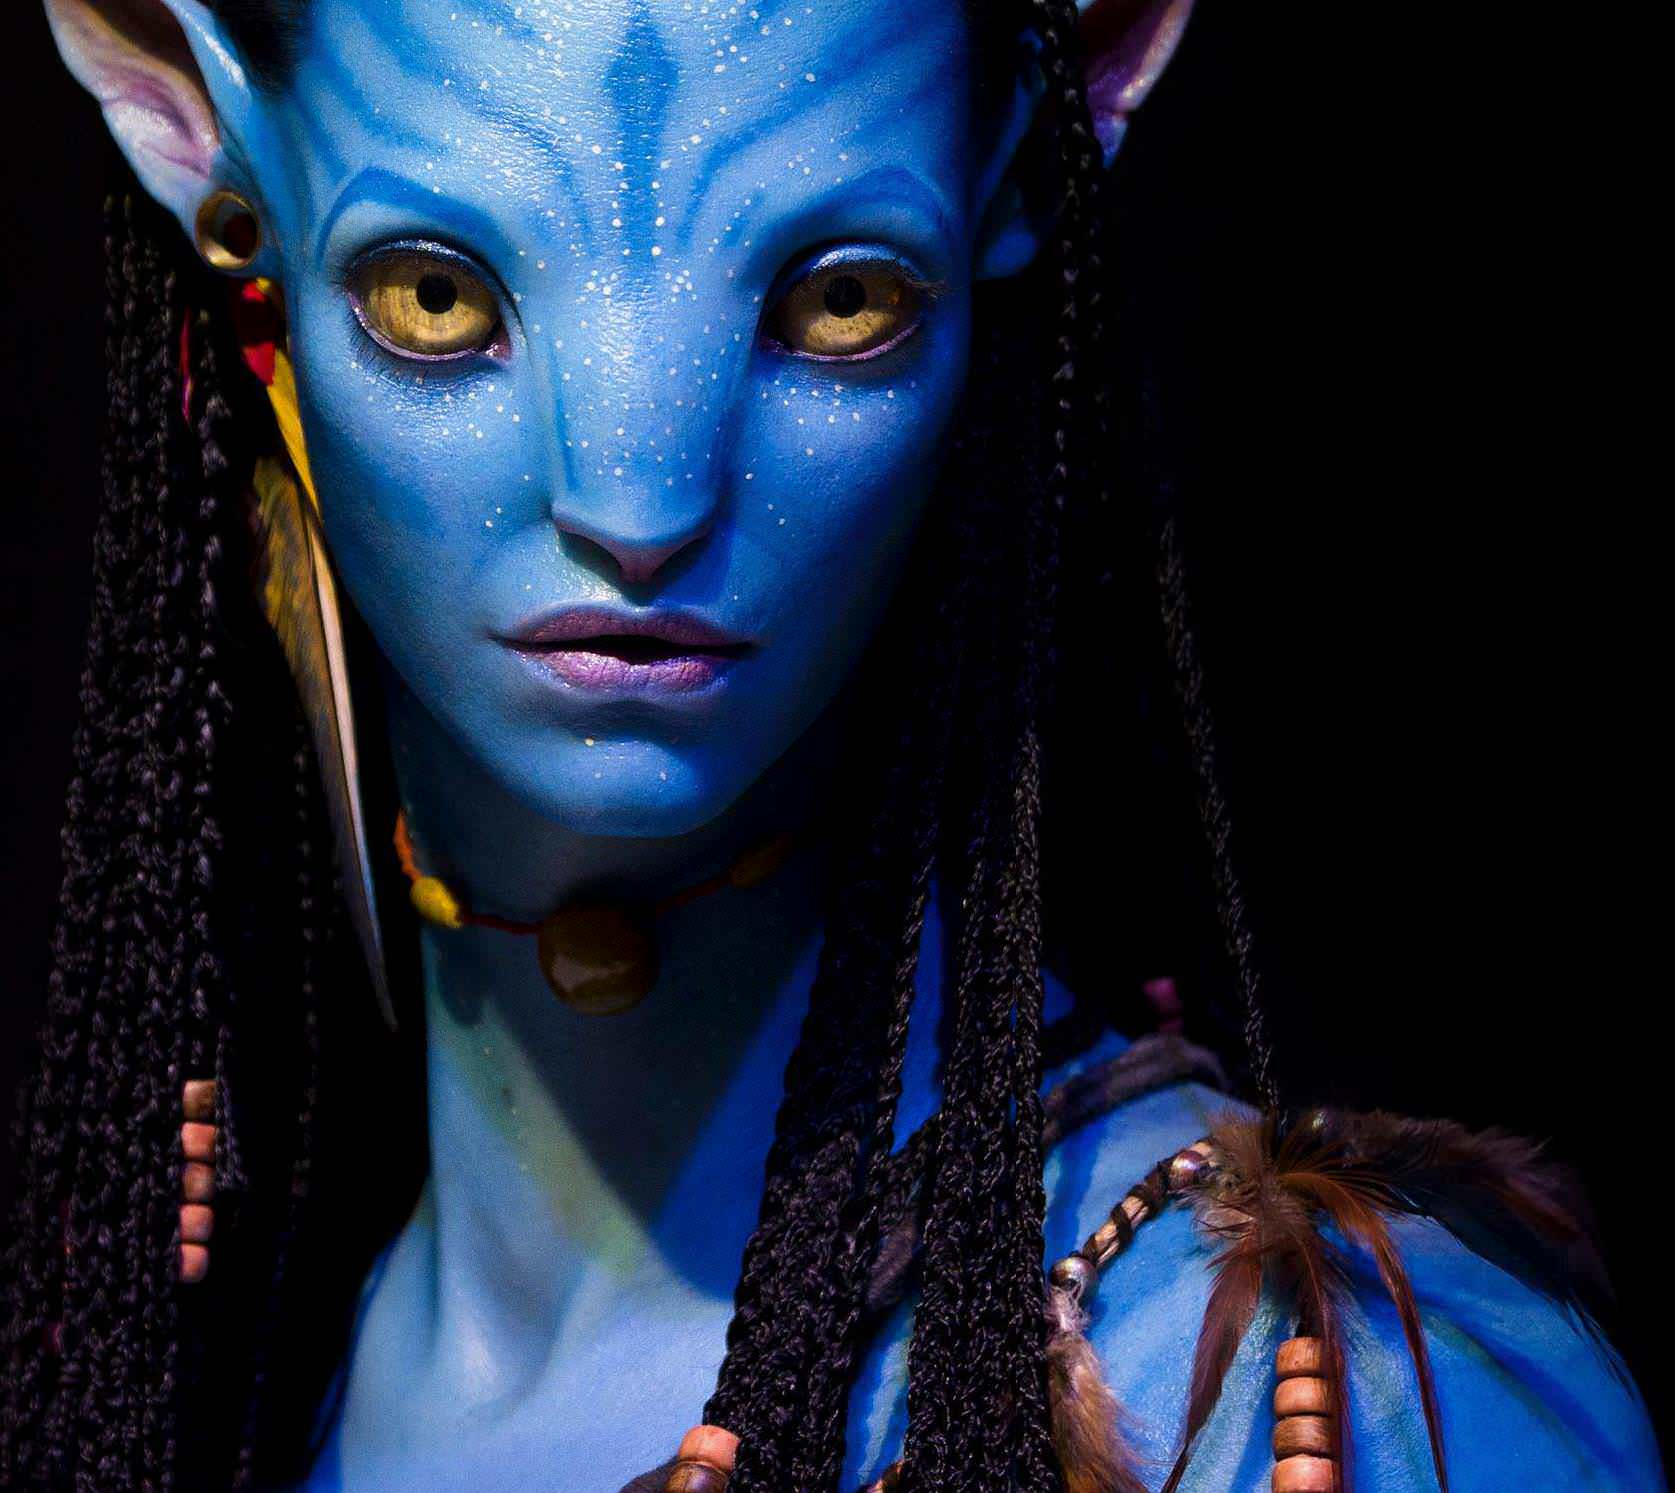 Avatar Release New Movie: 'Avatar' Sequels Now Scheduled To Start In December 2020